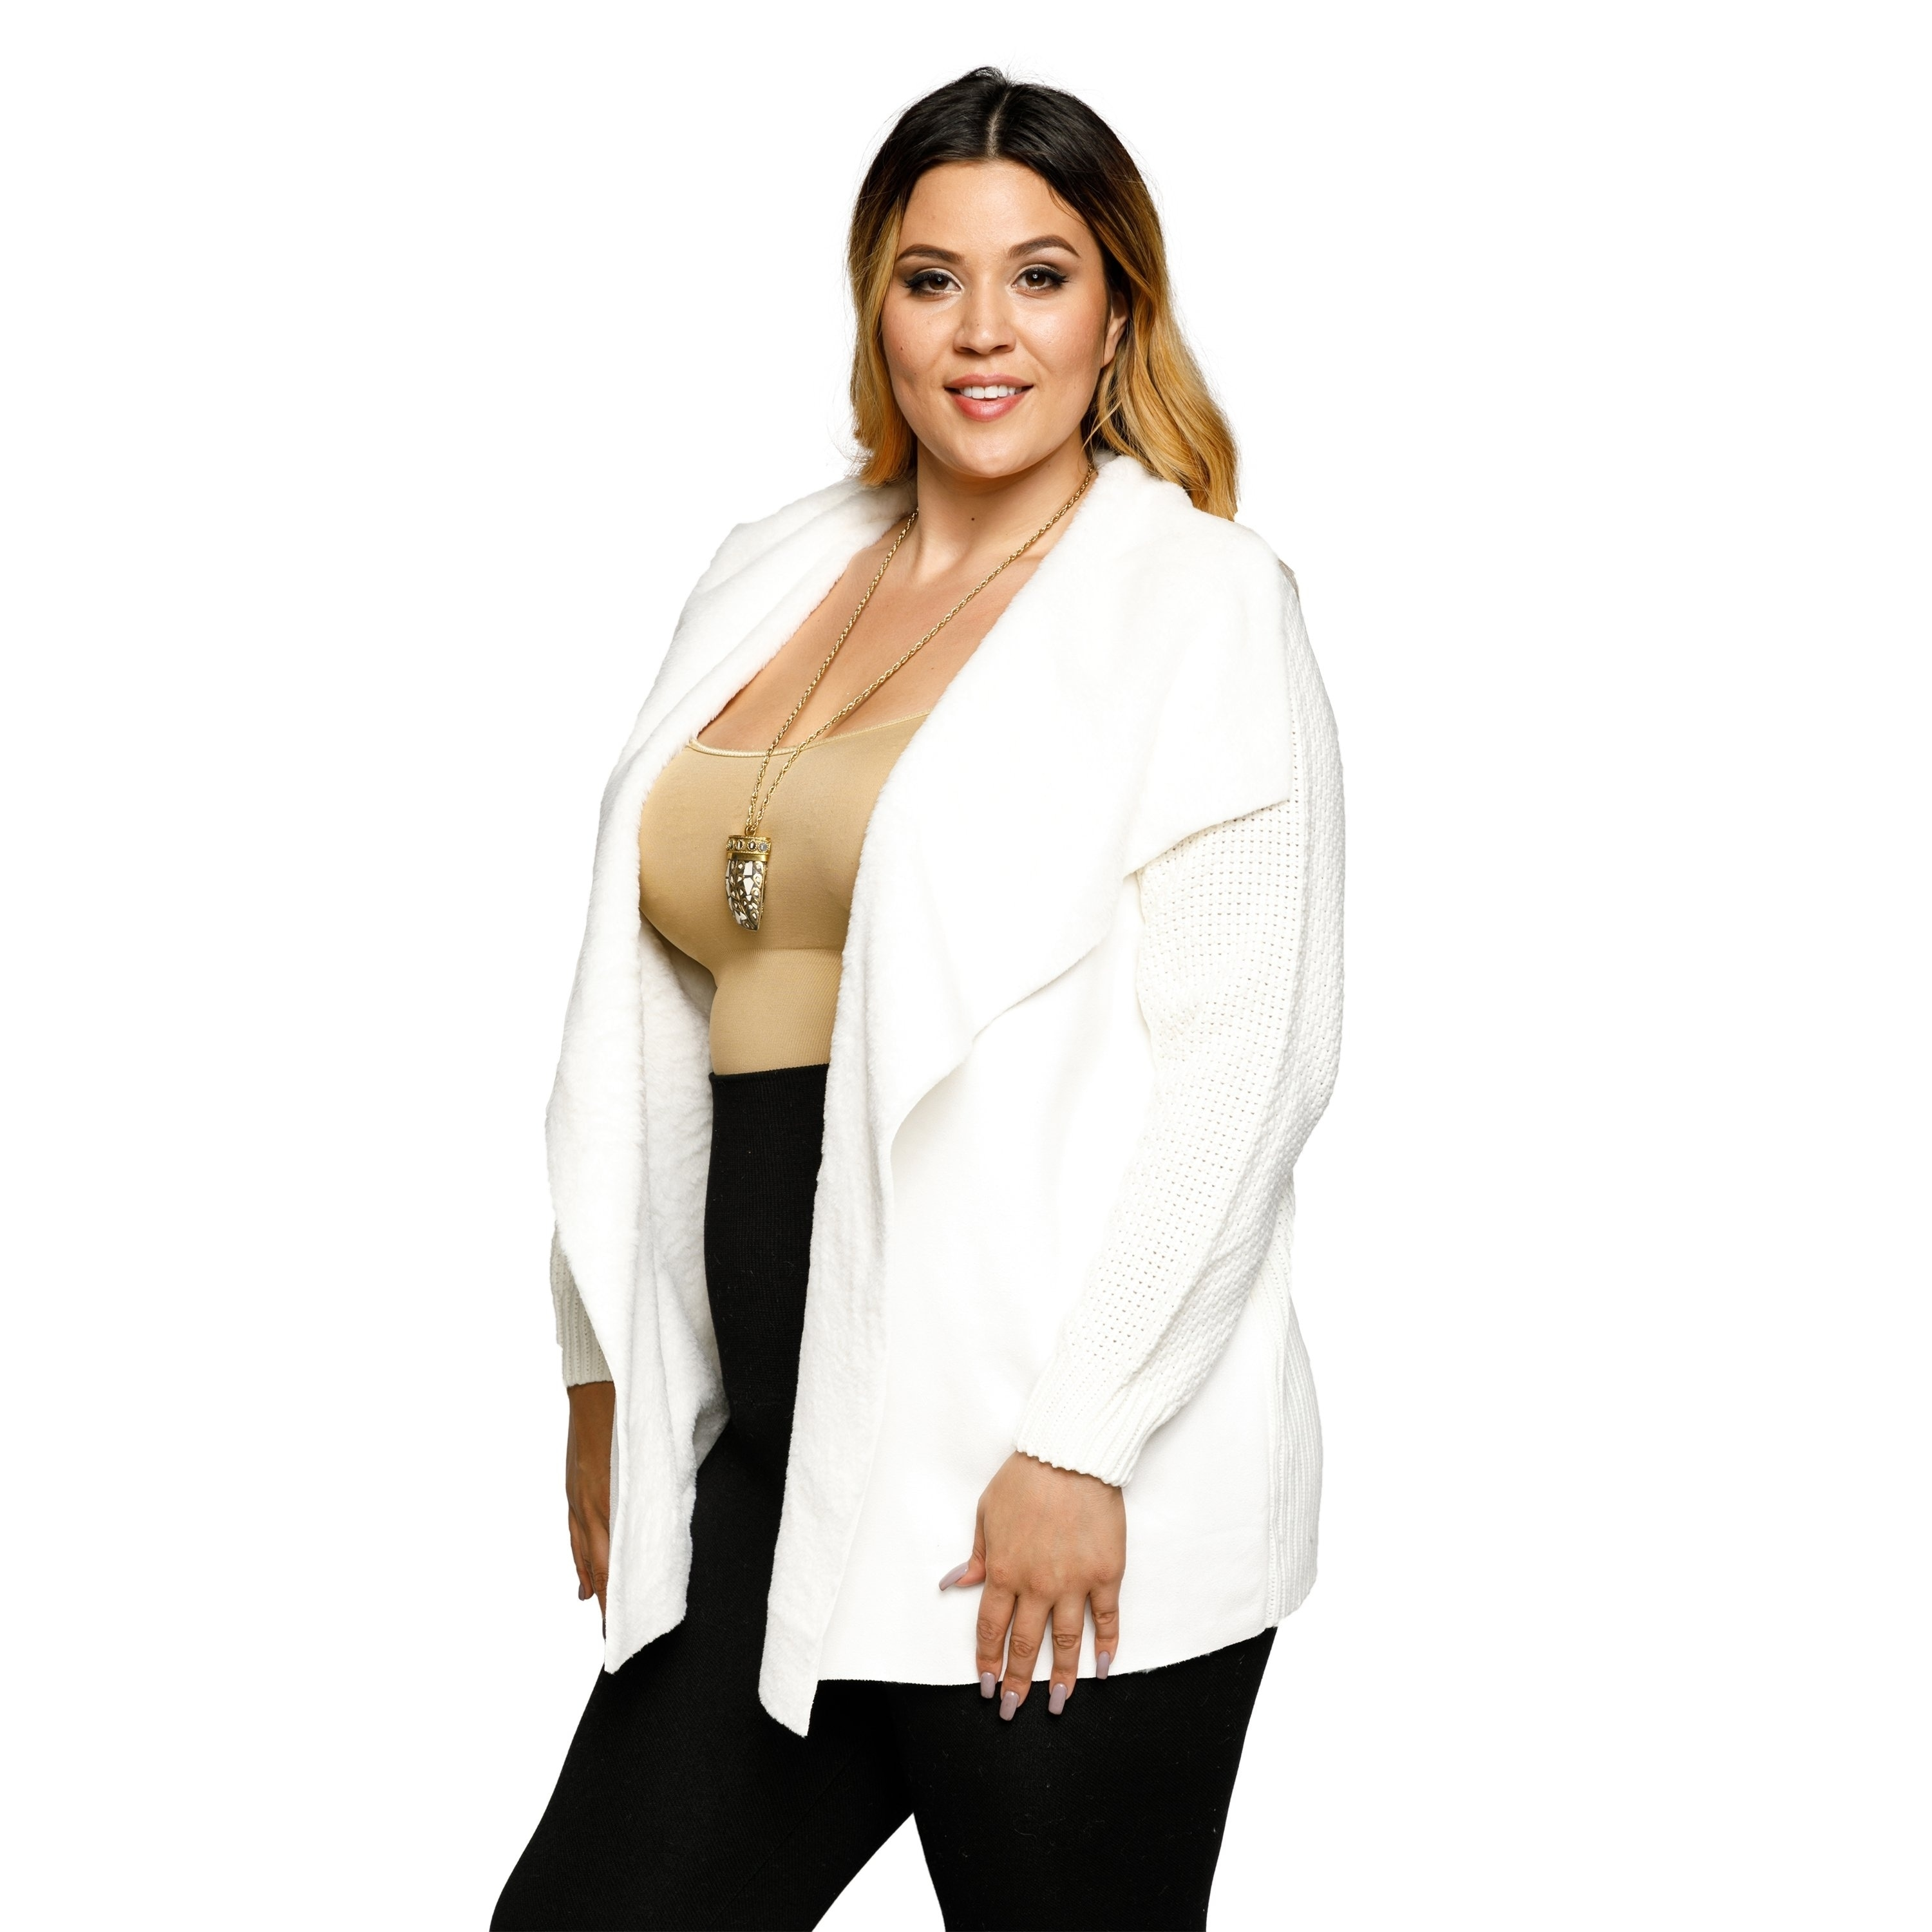 0c7a72f8c1 Shop Xehar Womens Plus Size Faux Fur Collar Open Front Cardigan Sweater -  Free Shipping On Orders Over $45 - Overstock - 18793550